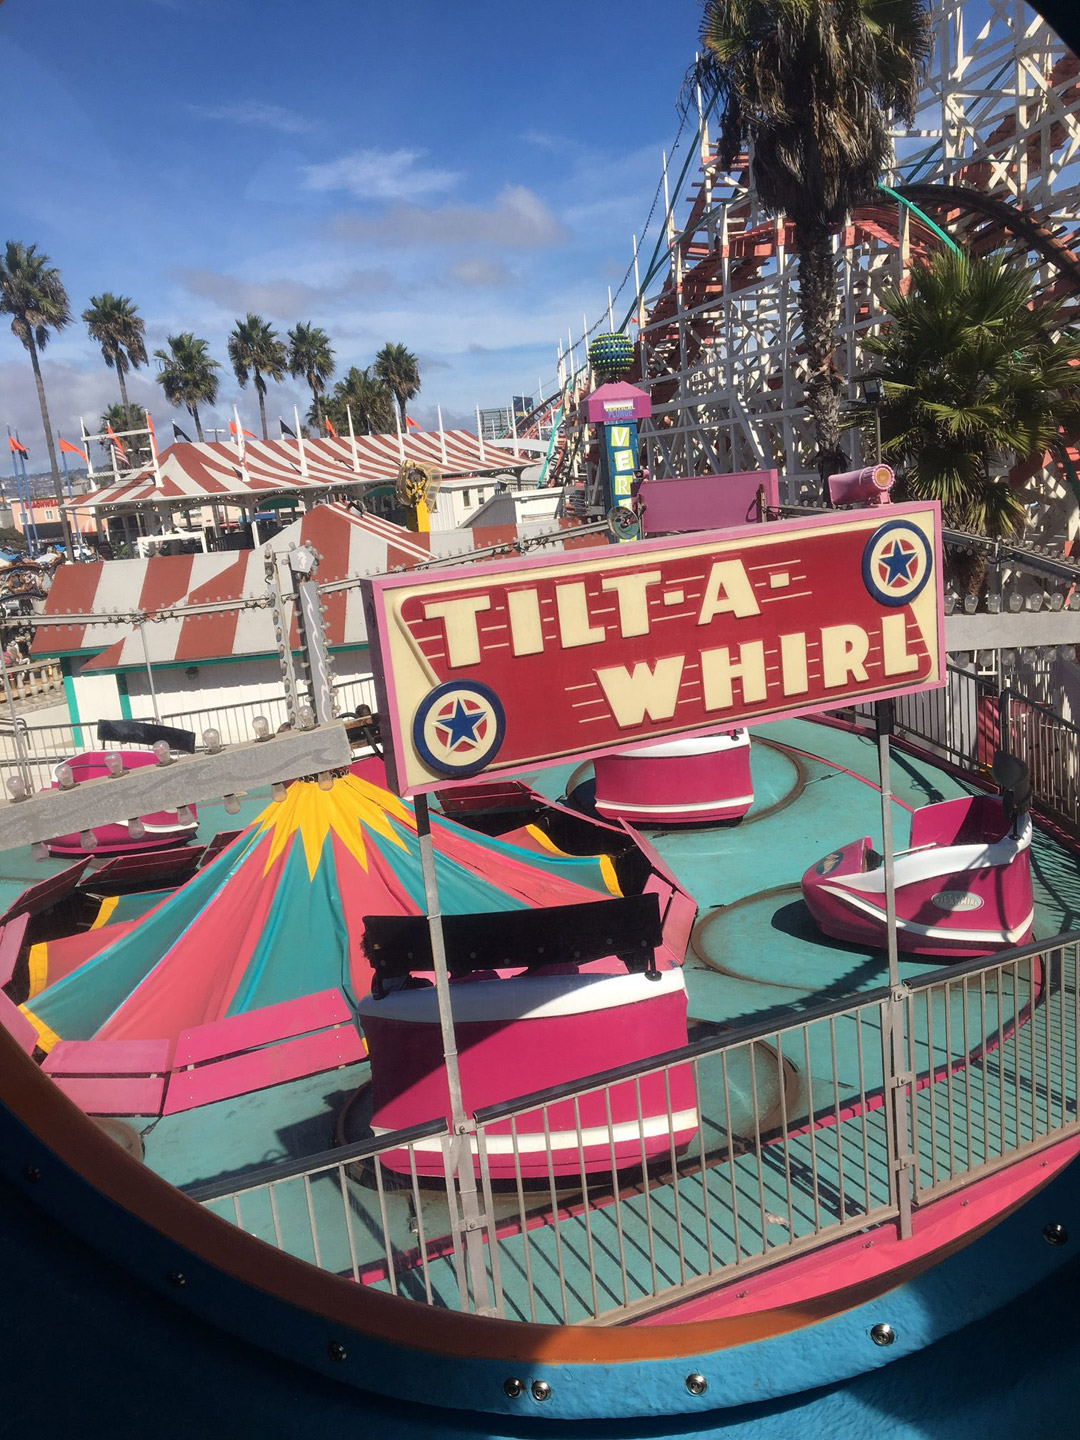 mission beach amusement park